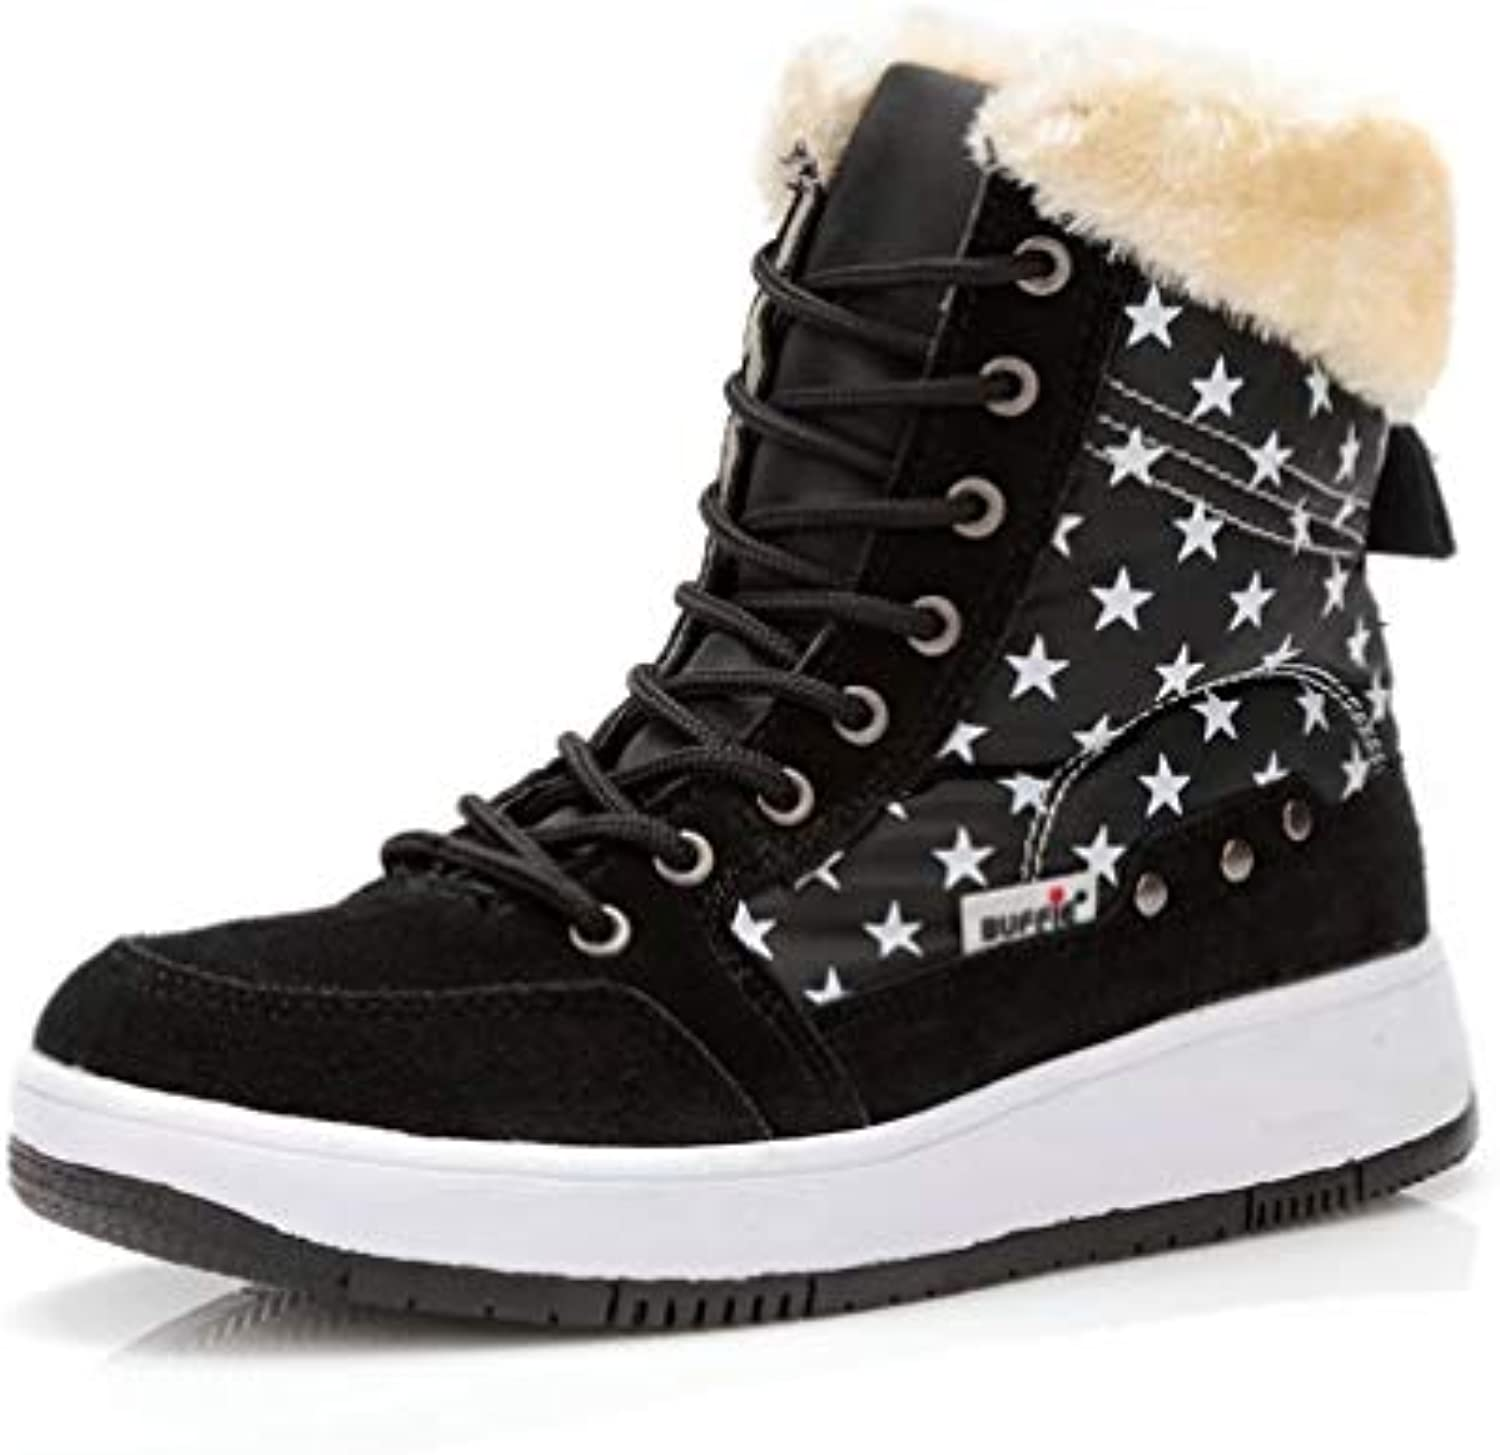 T-JULY Women New Brand Winter Snow Boots Ankle Short Fur Boots Girls Lace-up Warm Fur fFits Ture Normal Cow Suede Leather Plus Size Boots